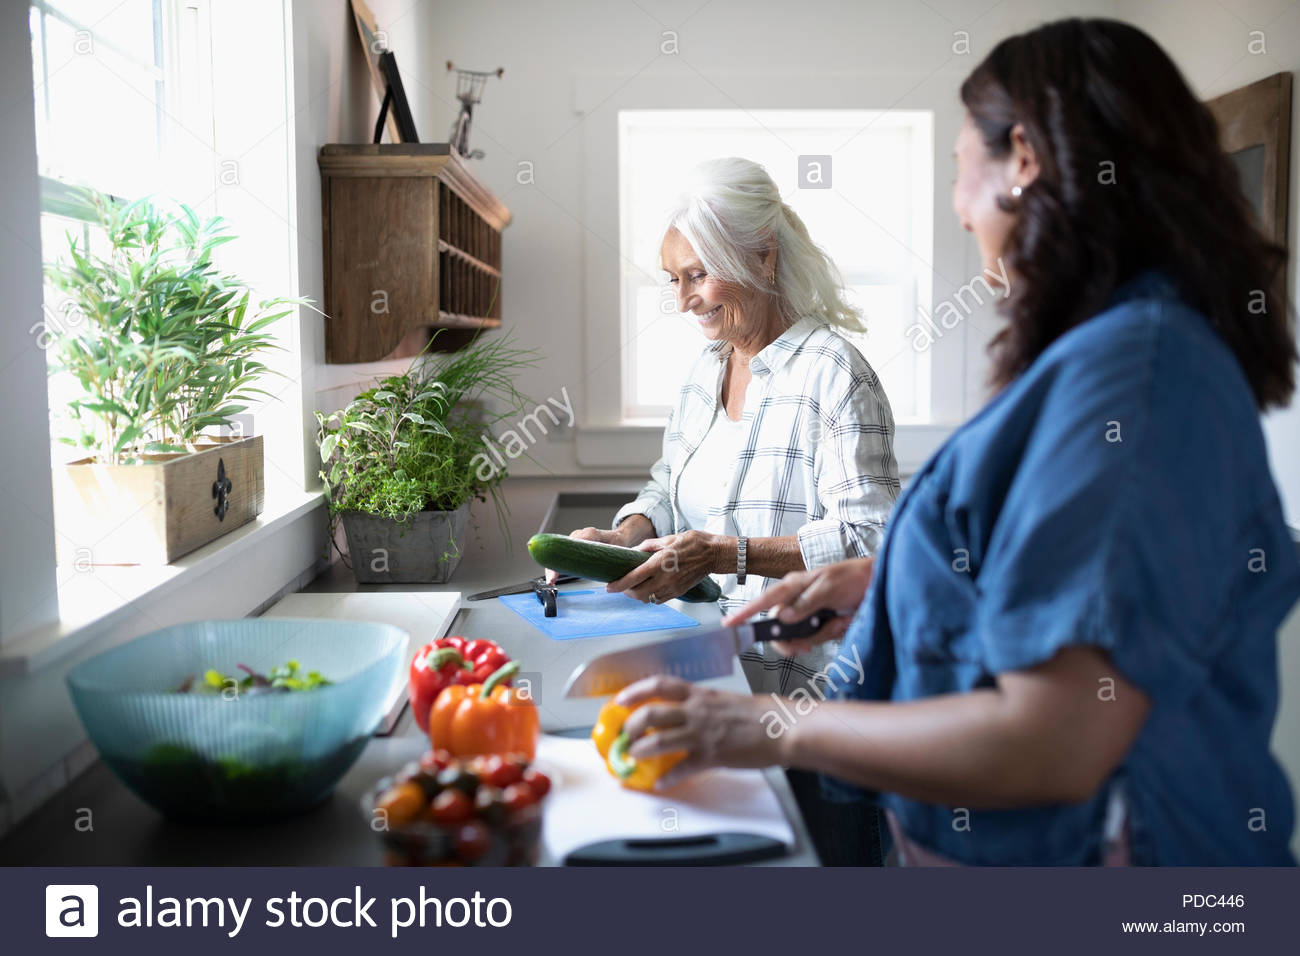 Daughter and senior mother cooking, cutting vegetables in kitchen - Stock Image